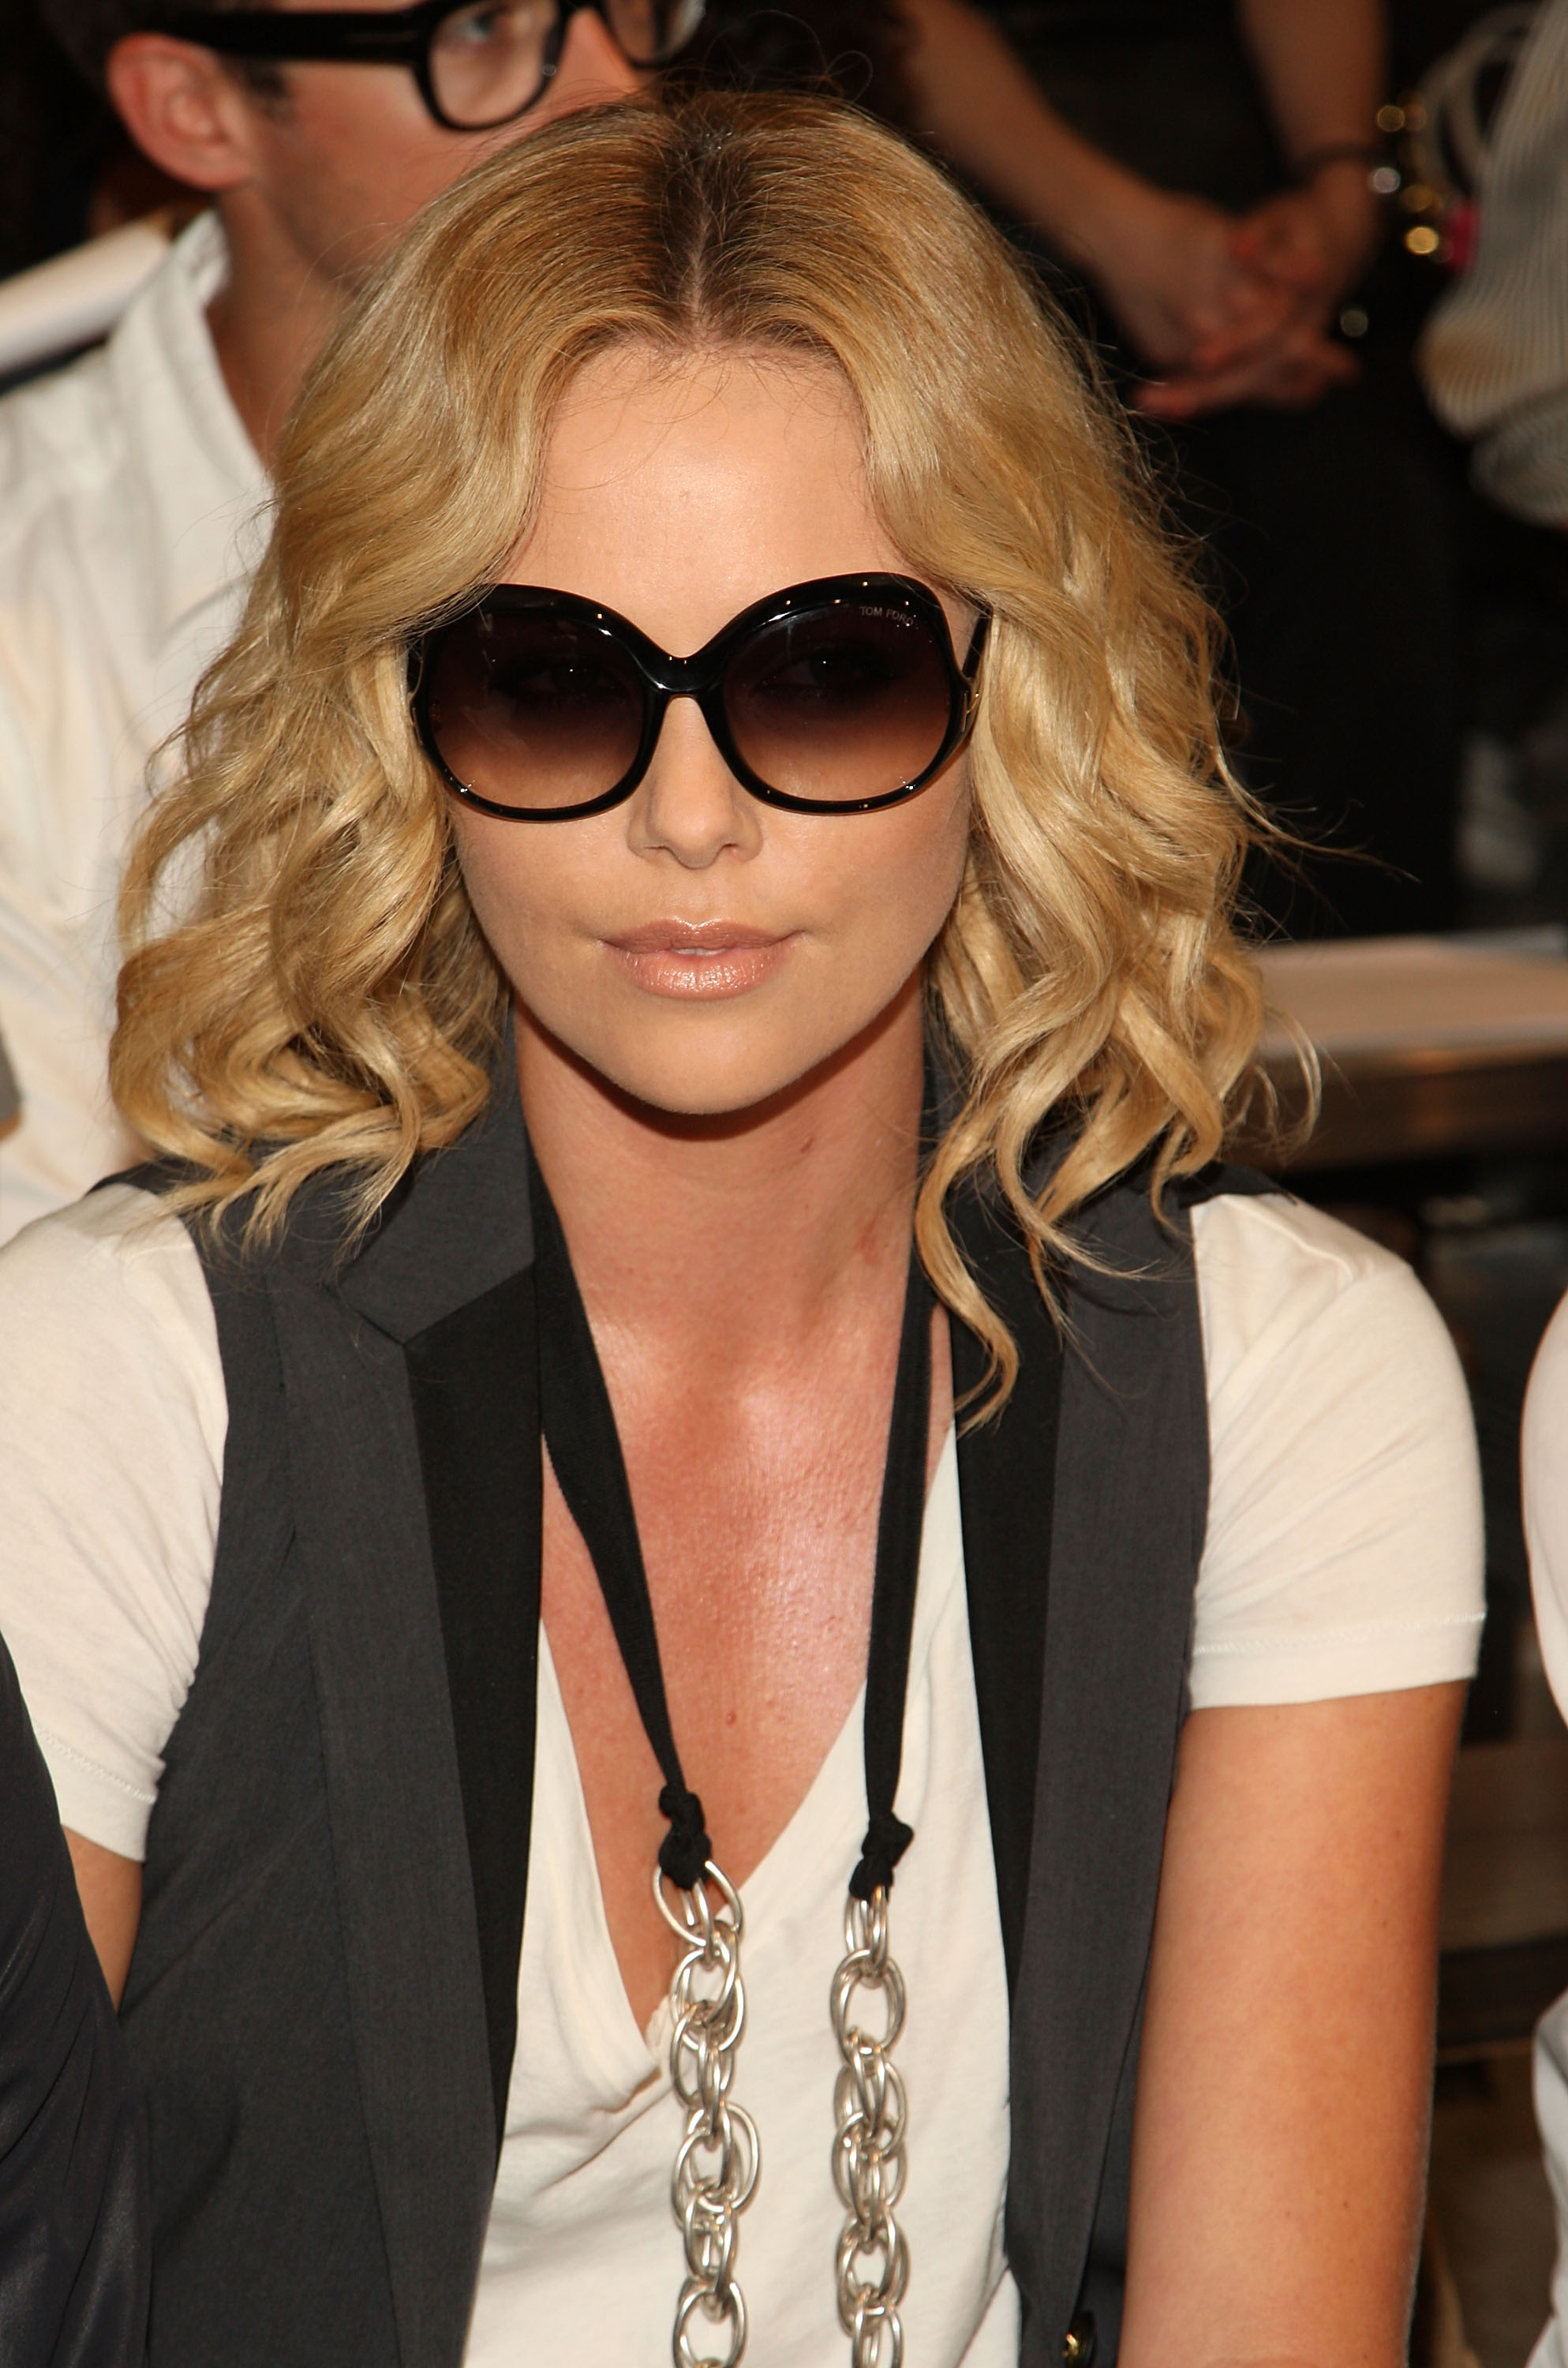 Charlize Theron photo #143921